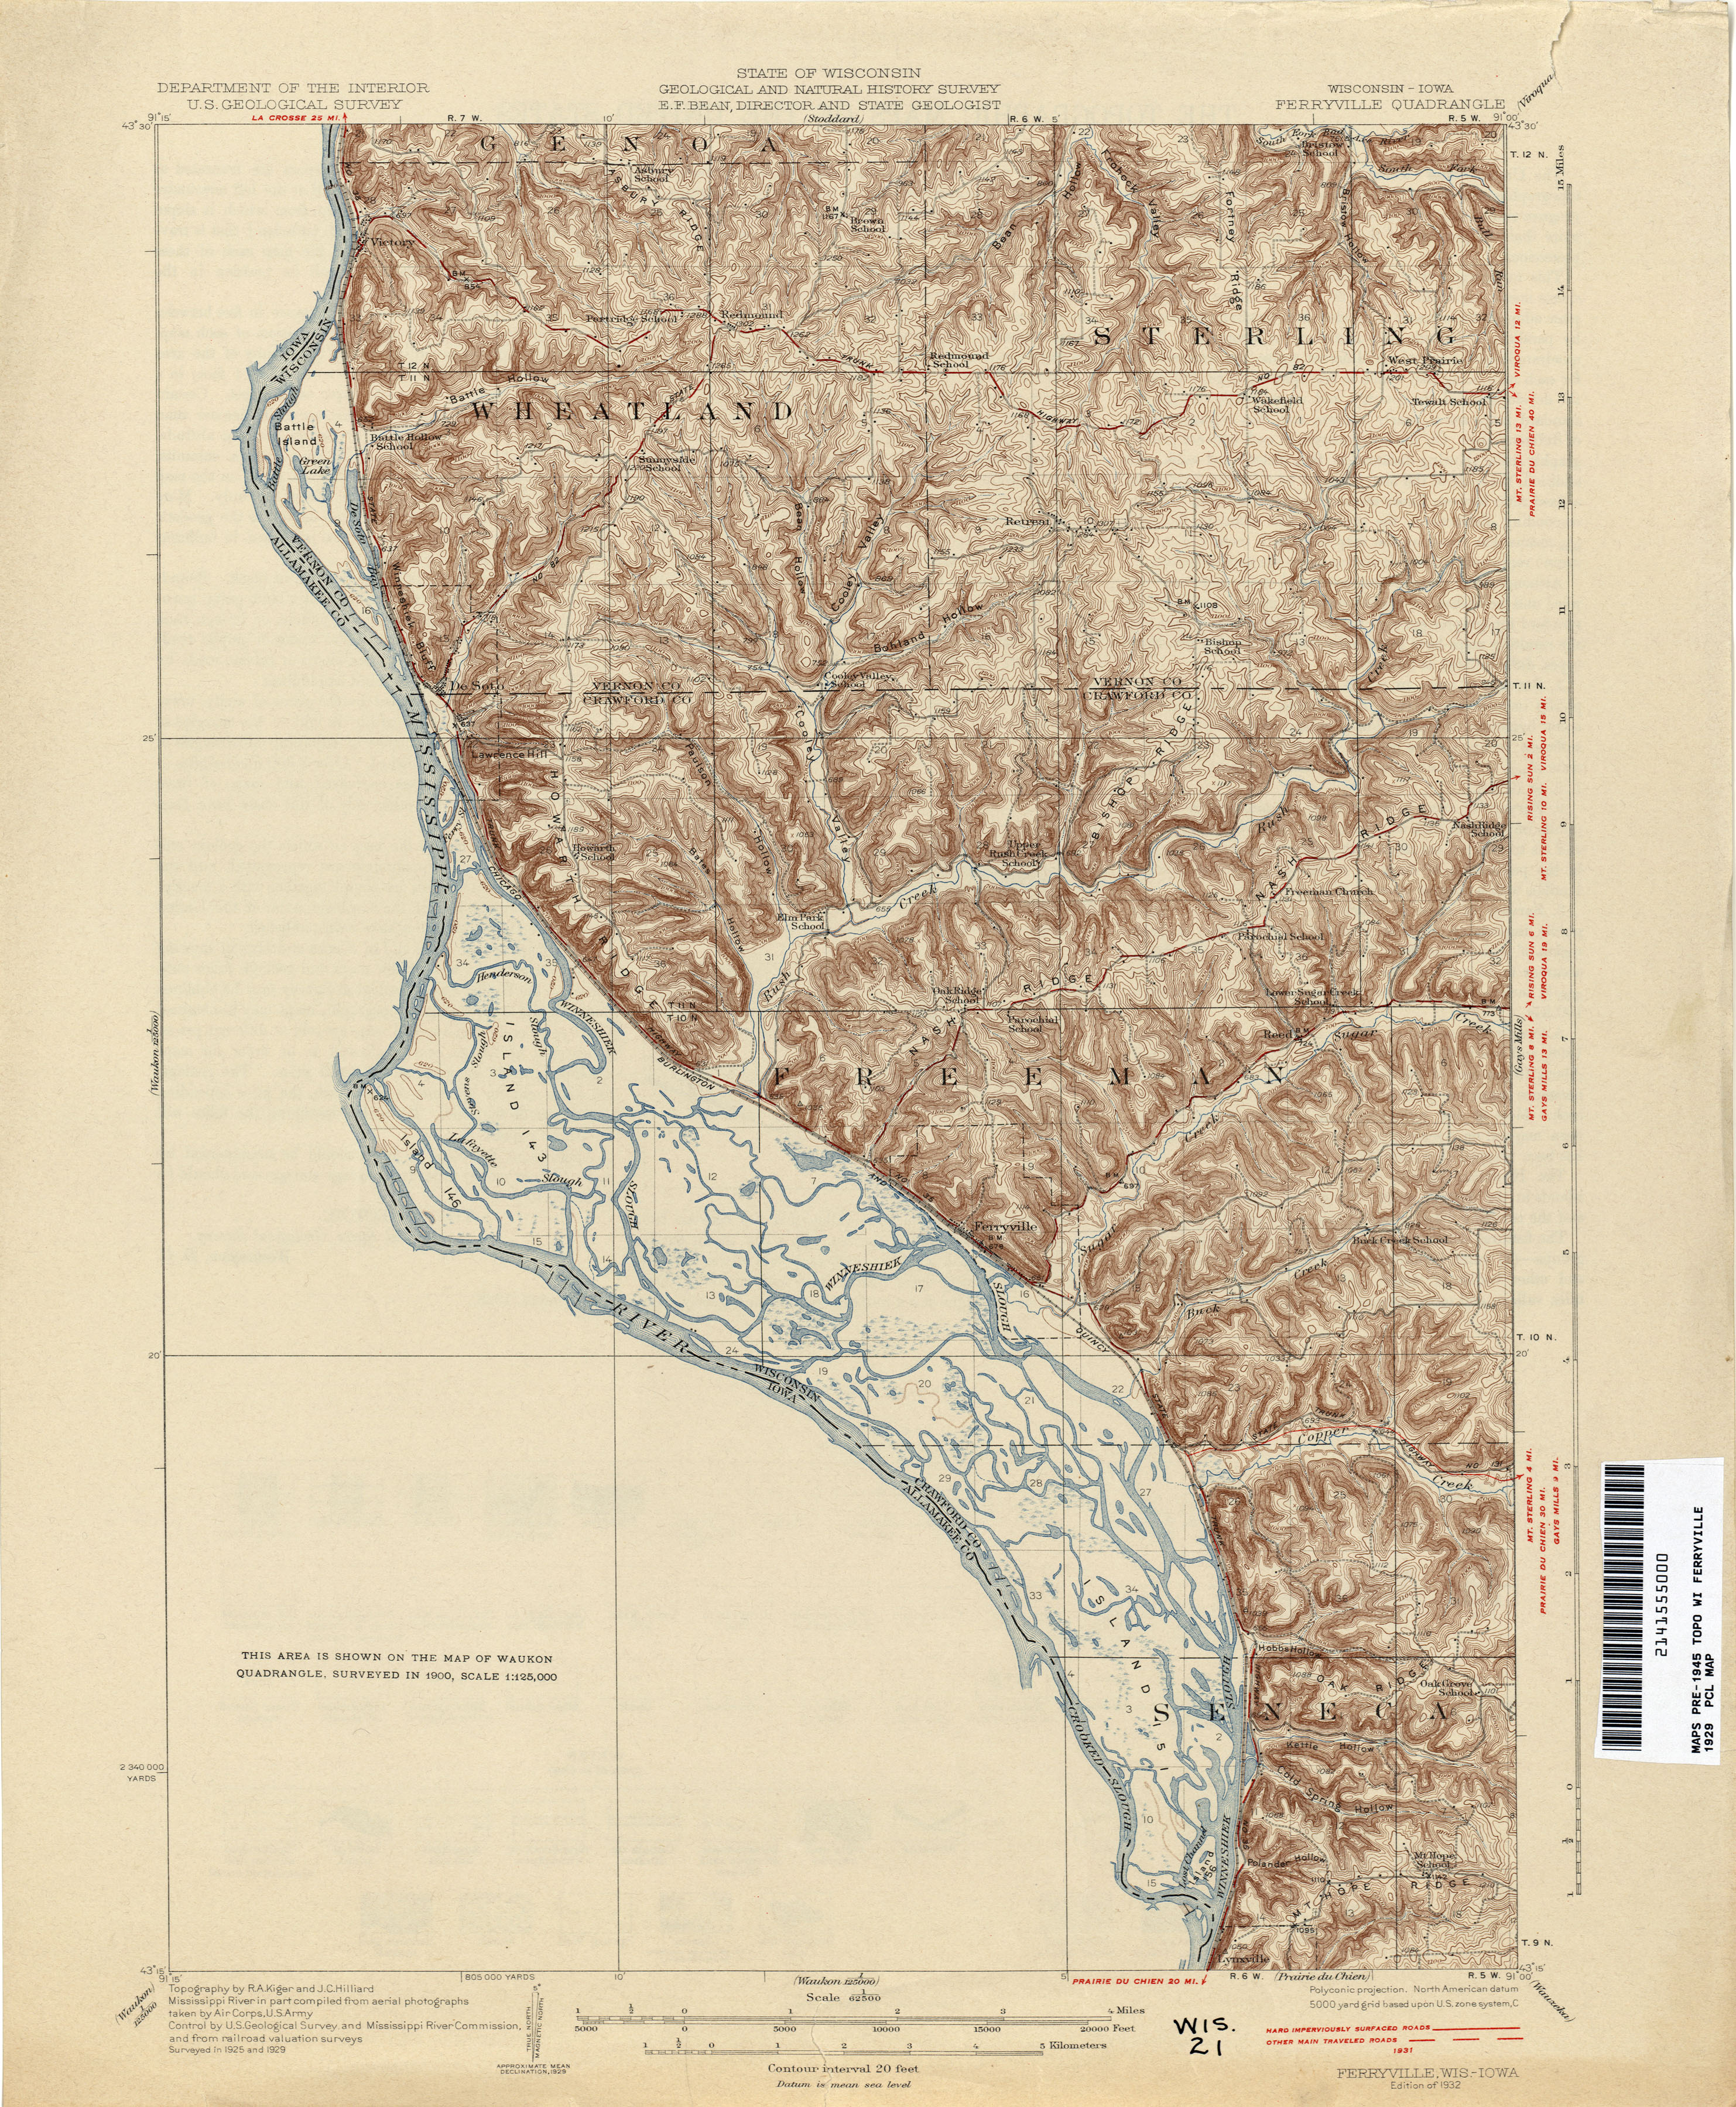 Historical Topographic Maps PerryCastañeda Map Collection UT - A map of wisconsin